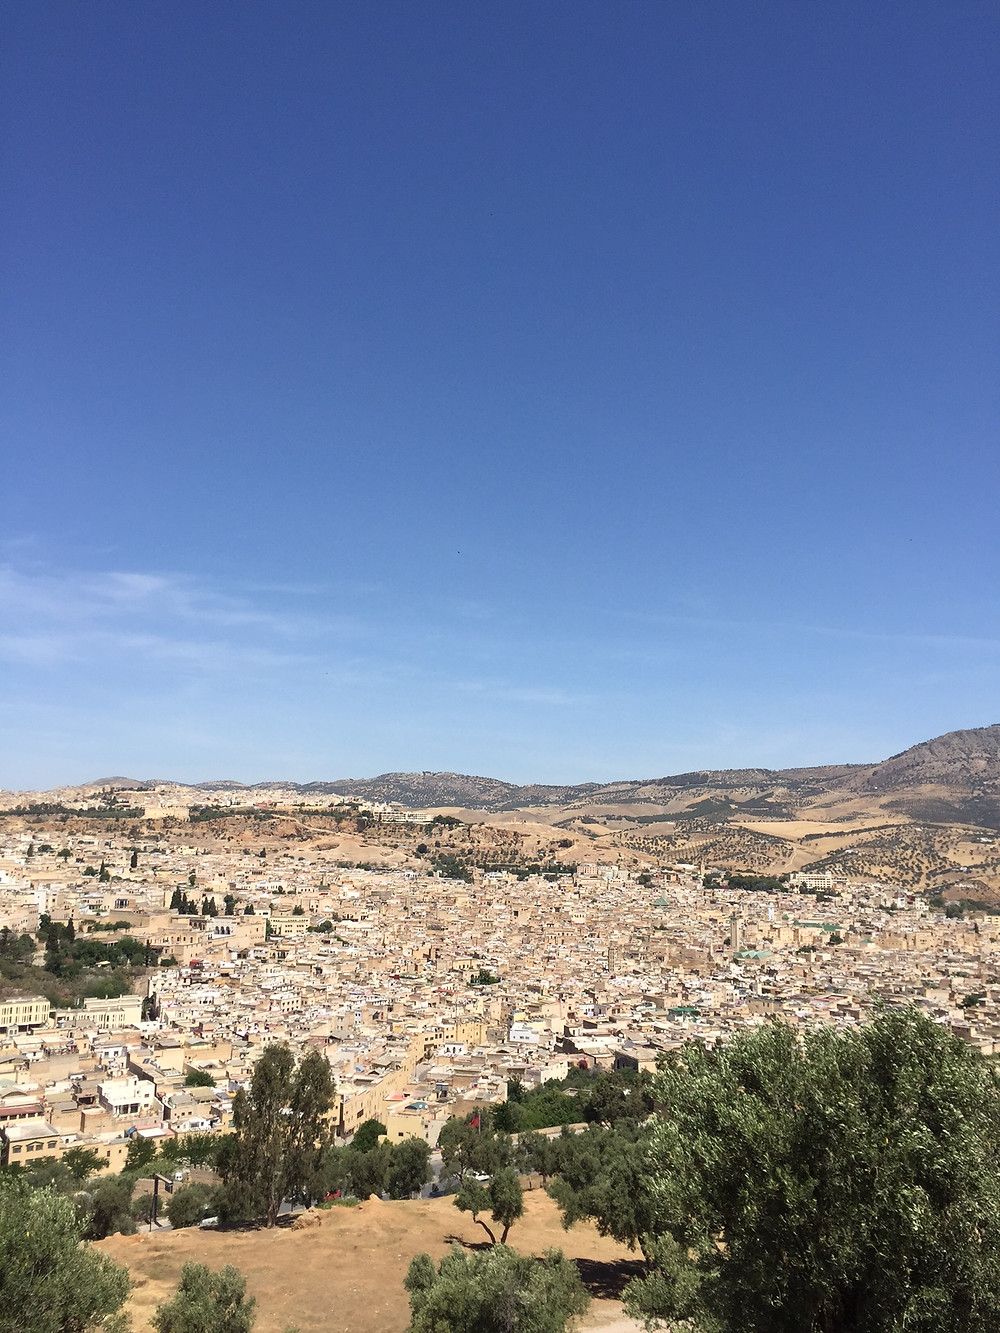 A view of Fez....  Elli Travel Group is a New York Travel Agency based in Larchmont New York. Proud members of Virtuoso, Rosewood Elite and Starwood Luxury Privileges.